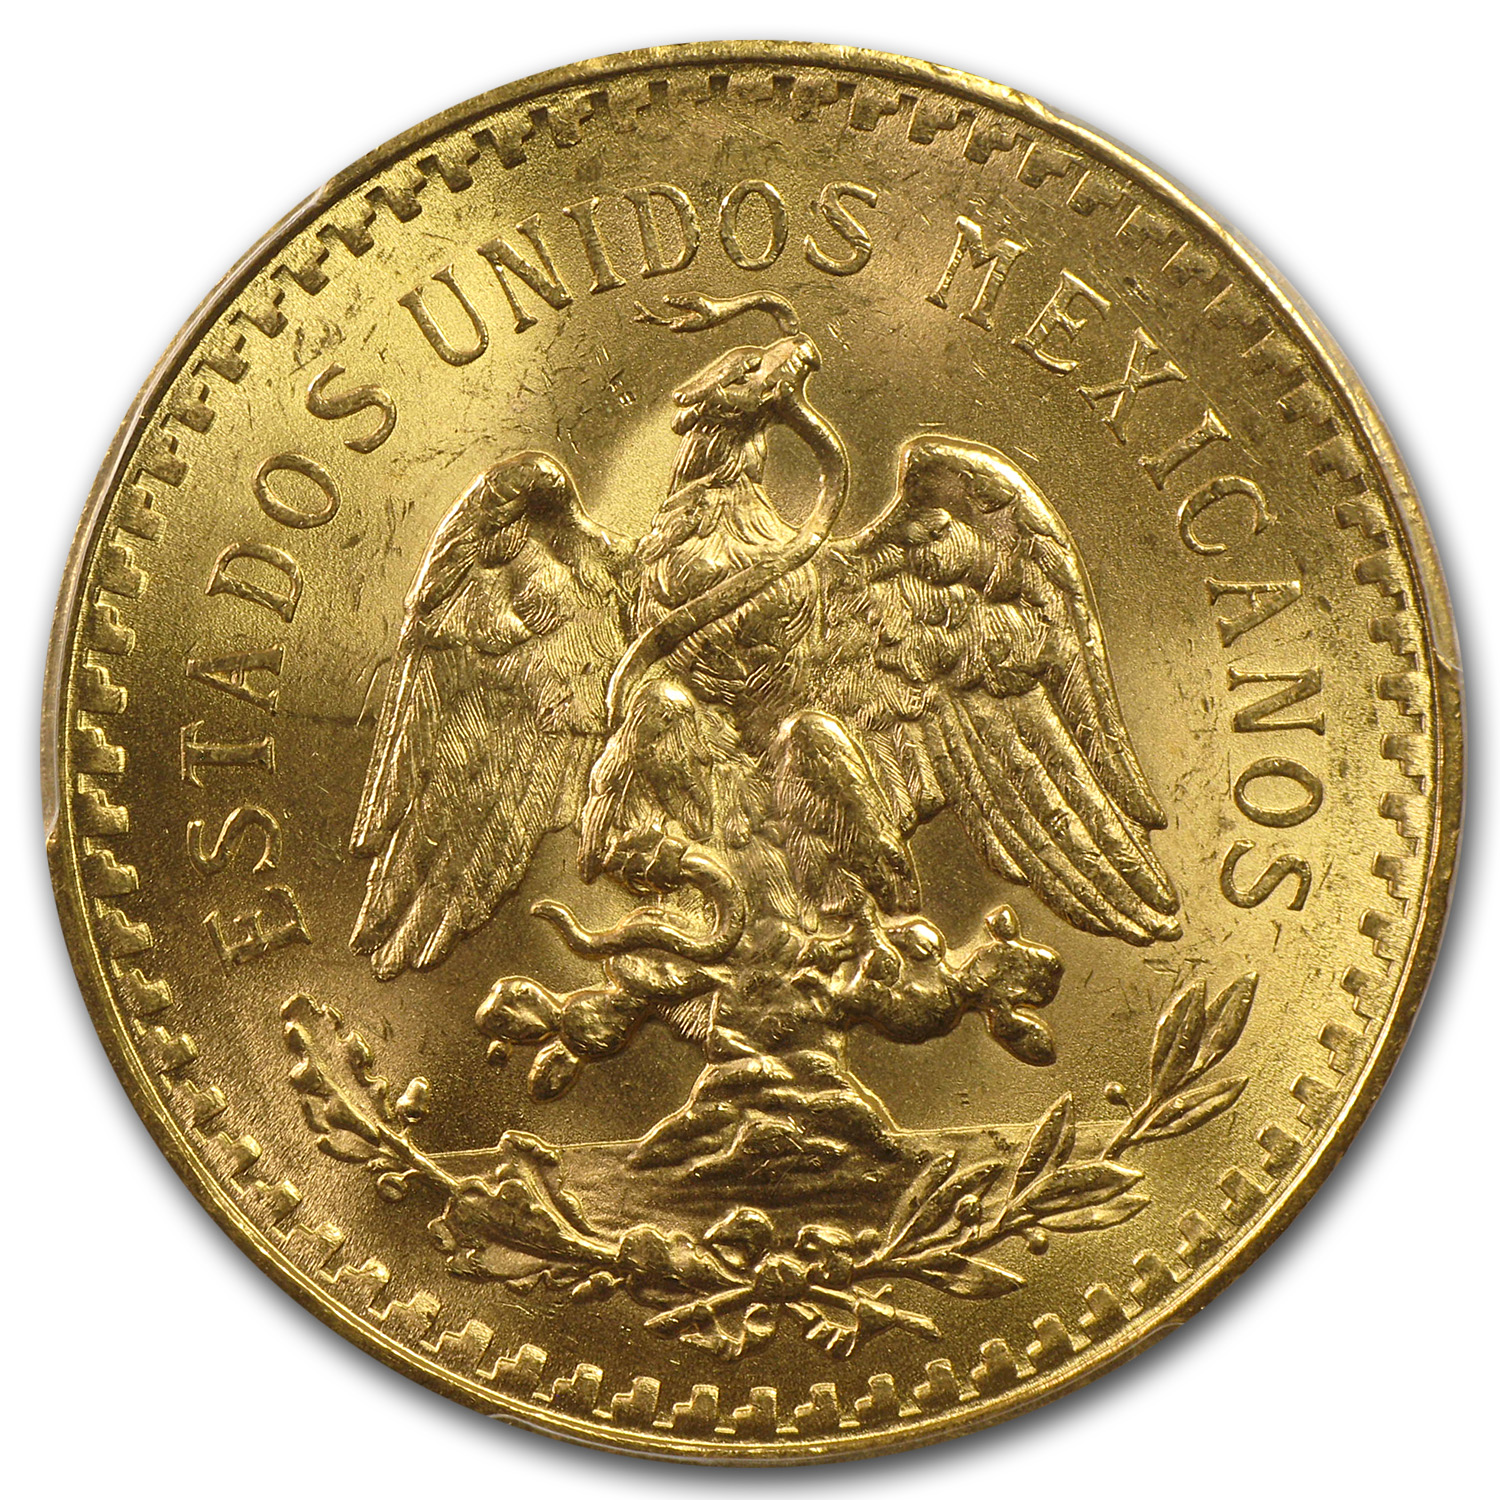 Mexico 1925 50 Pesos Gold Coin - MS-63+ PCGS (Secure Plus!)